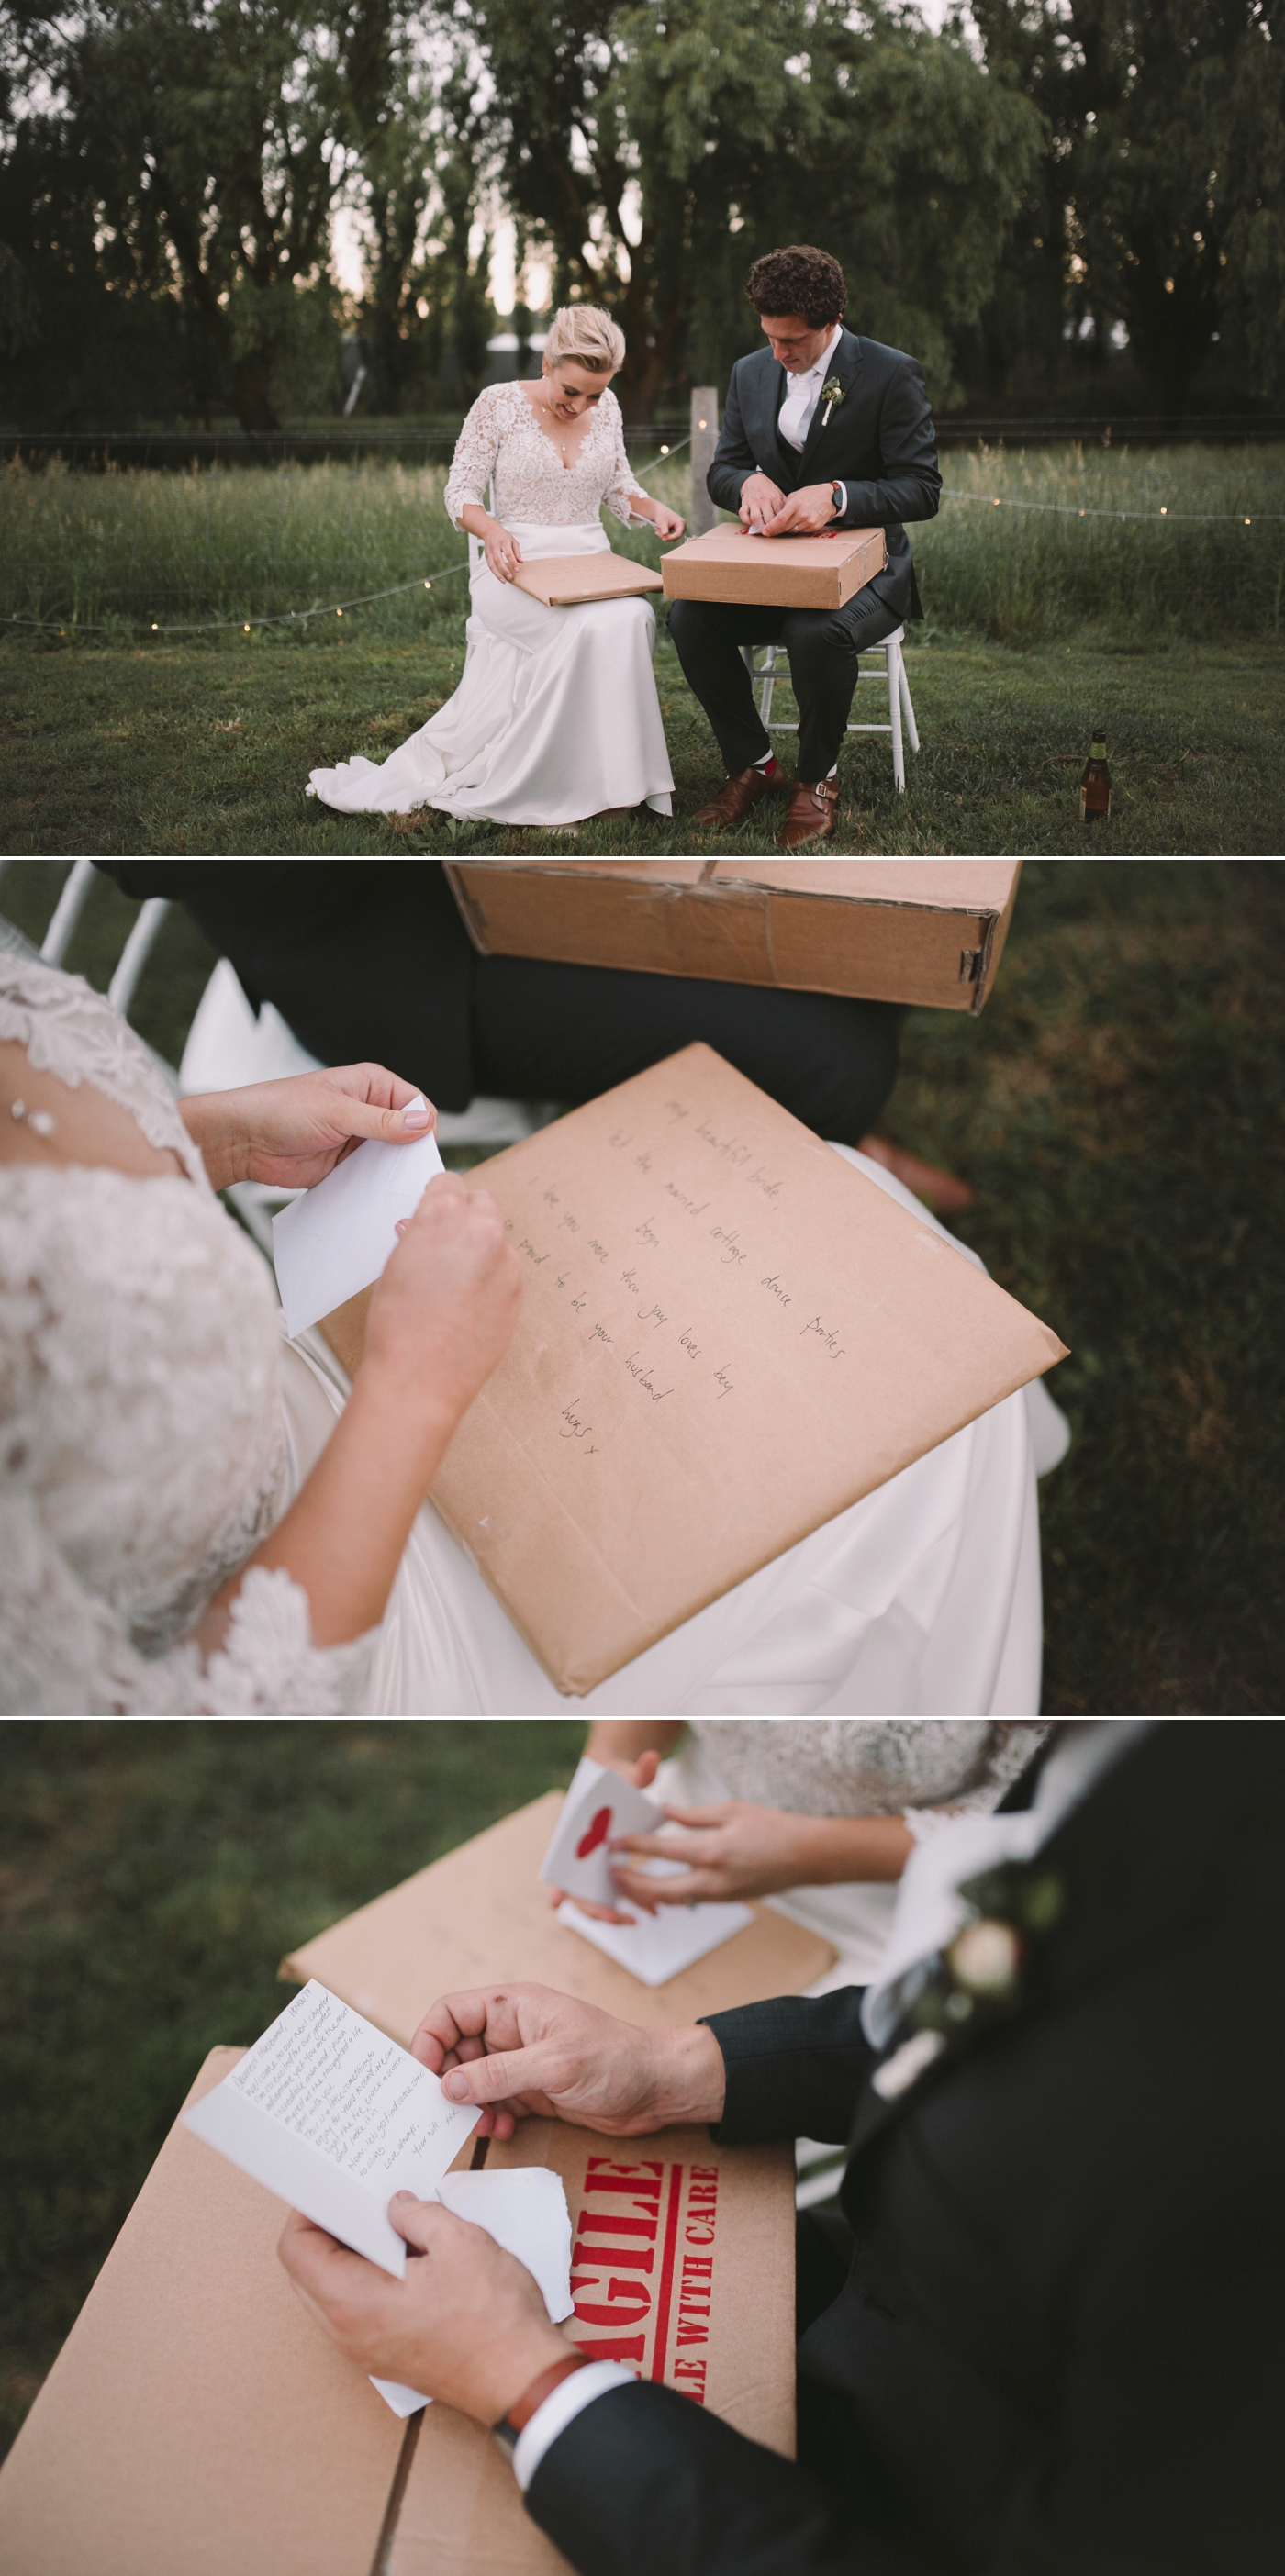 Penny and Michael - Adelaide Hills Wedding Photographer - Natural wedding photography in Adelaide - Katherine Schultz_0088.jpg